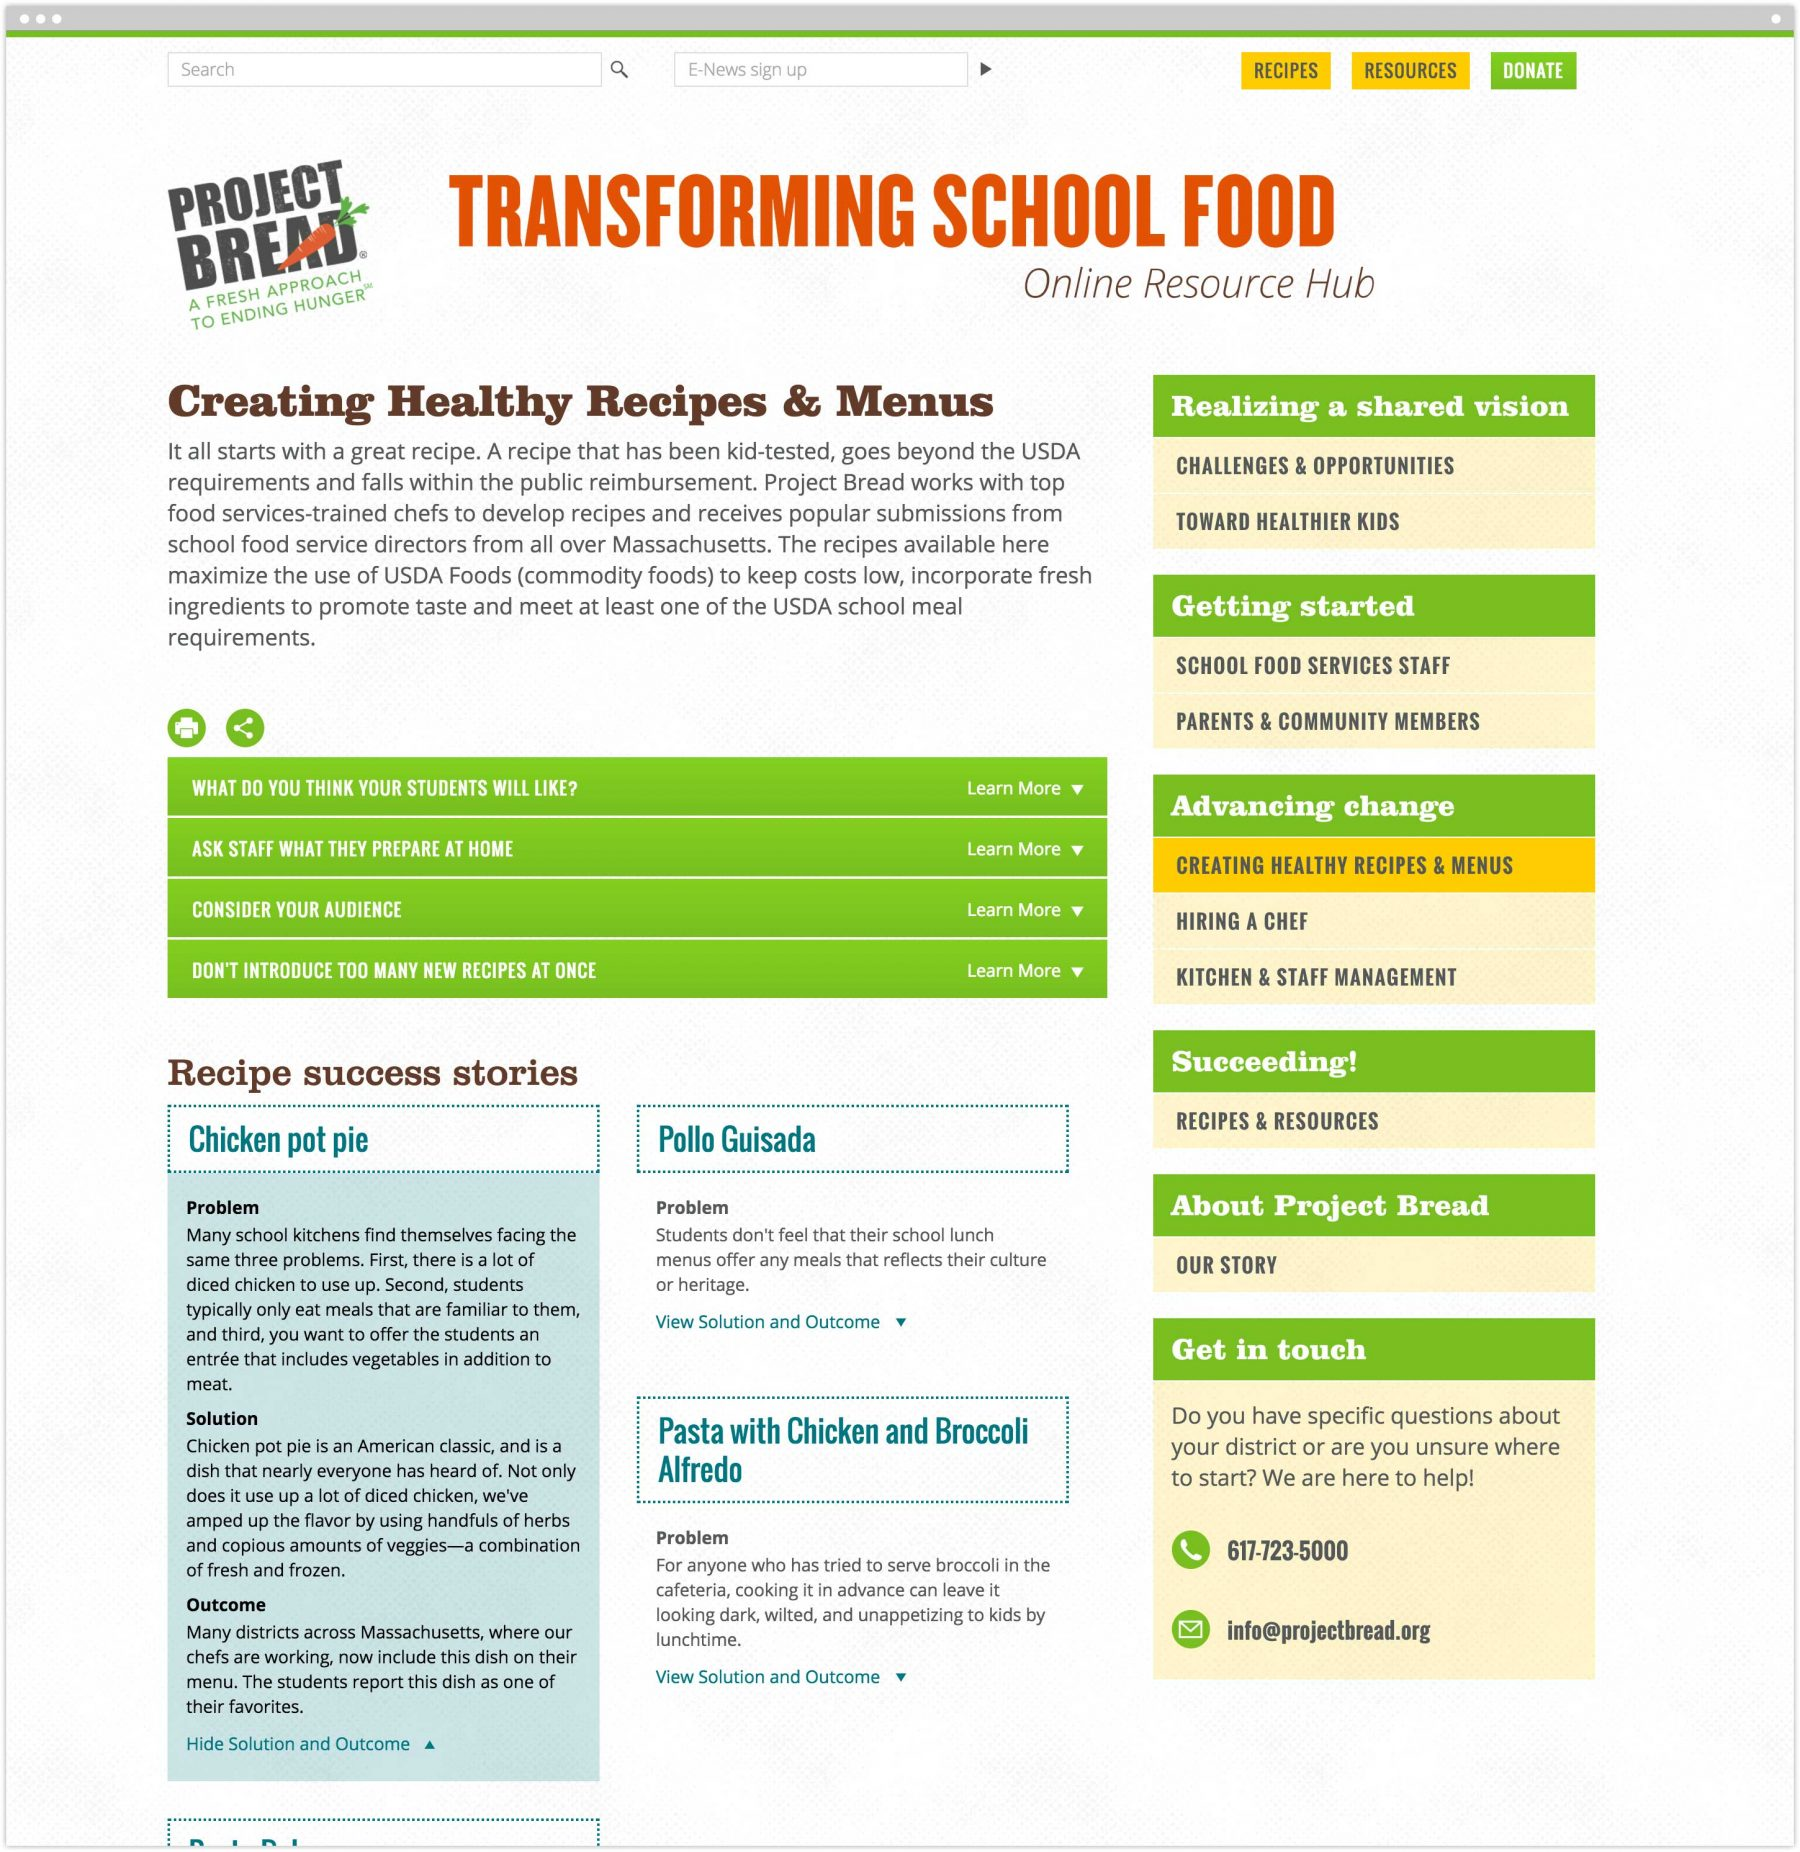 Creating Healthy Recipes & Menus interior page